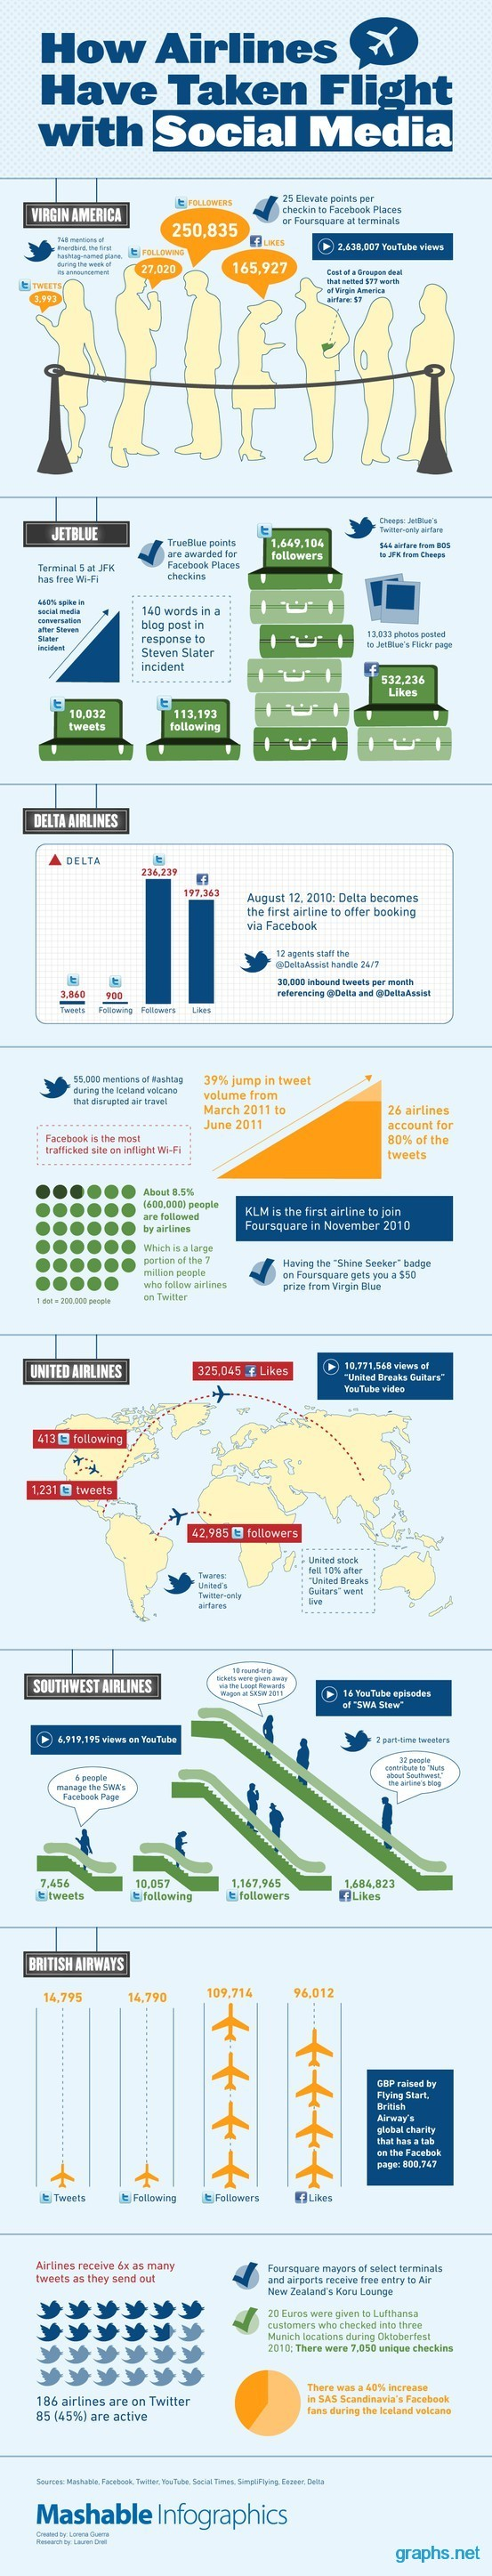 How to Use Social Media in Airline Industry?